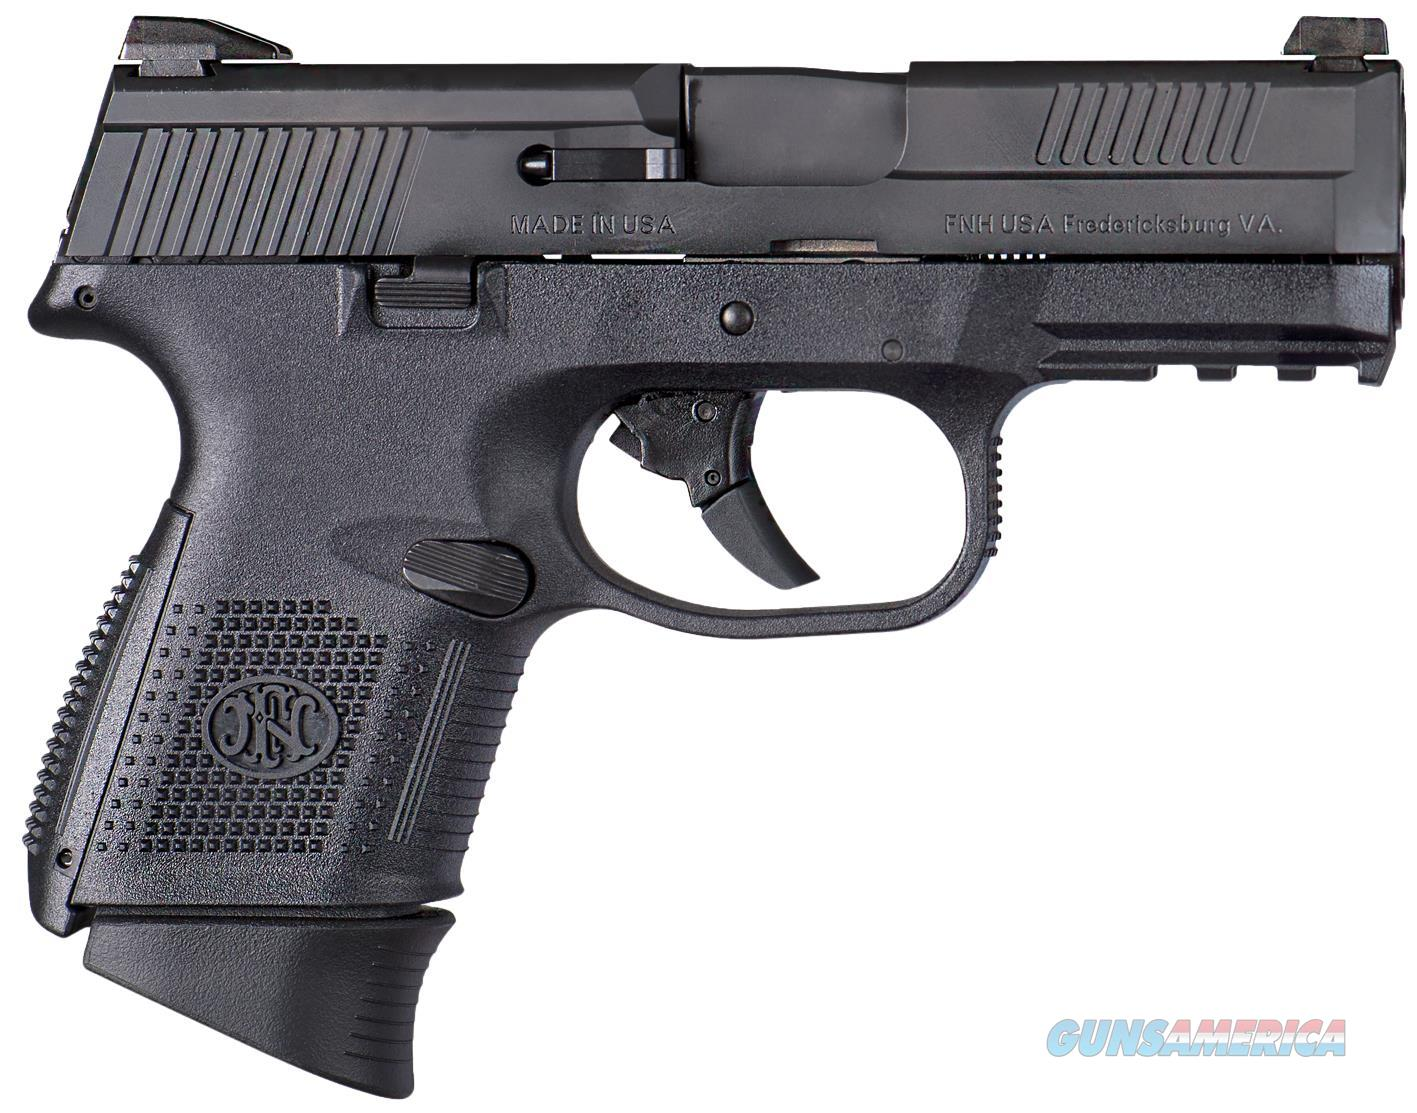 "Fn 66696 Fns 40 Compact Da 40 S&W 3.6"" 10+1 Polymer Grip Black 66696  Guns > Pistols > F Misc Pistols"